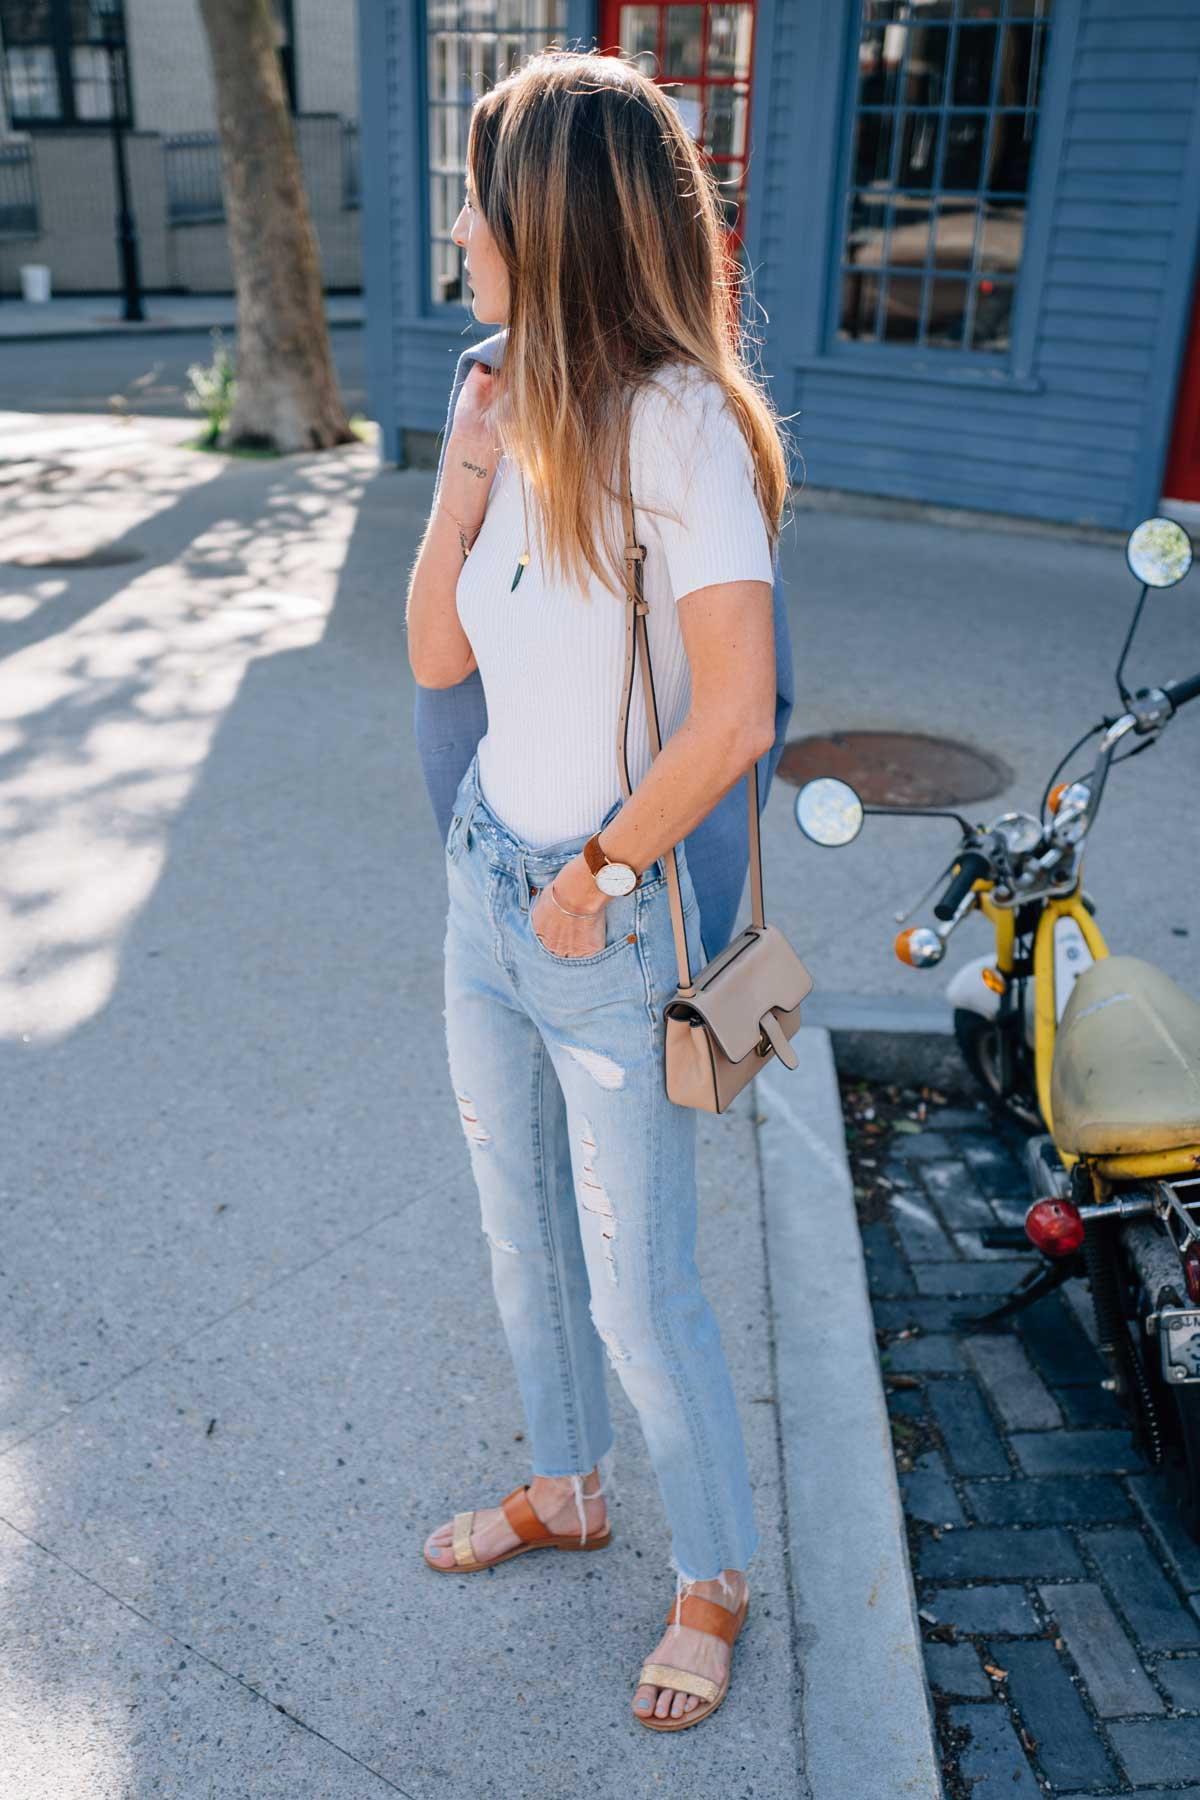 Jess Kirby wearing the Madewell Perfect Summer Jeans with Leather Sandals and the J.Crew Edit Bag for summer